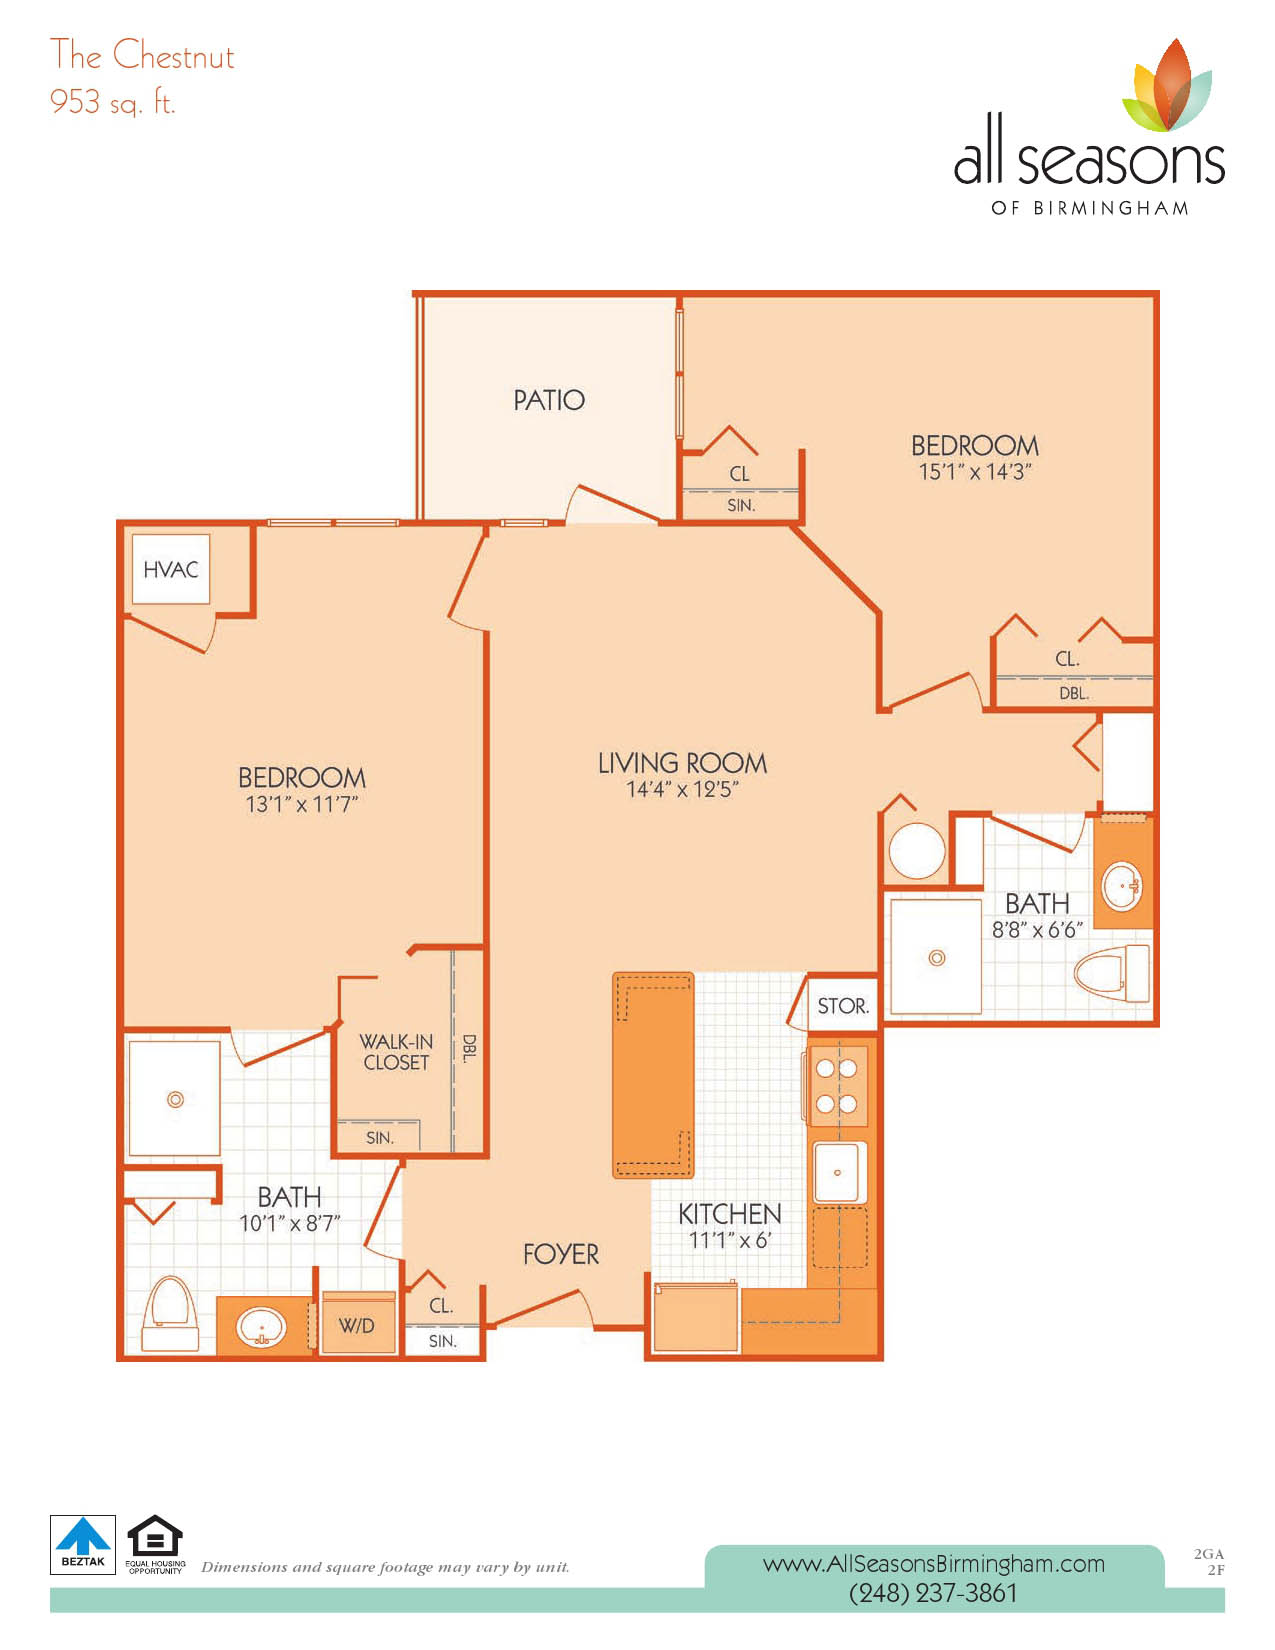 The Chestnut floor plan at All Seasons of Birmingham